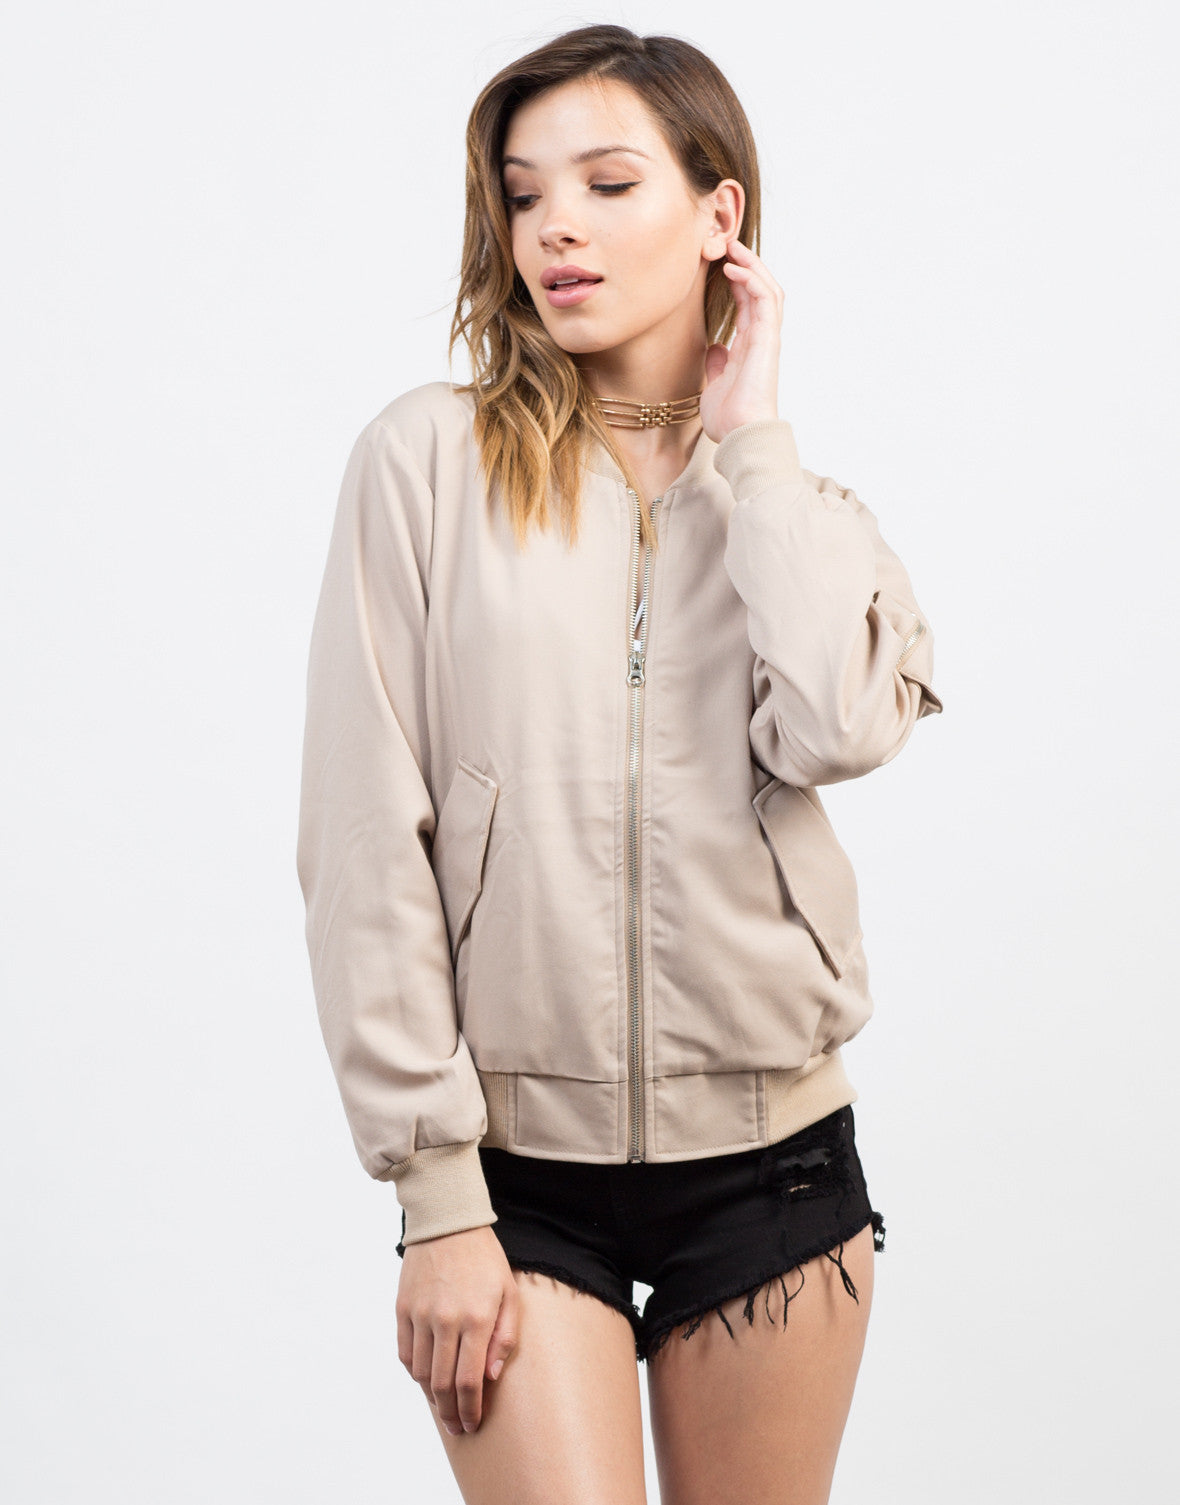 Front View of Canvas Bomber Jacket